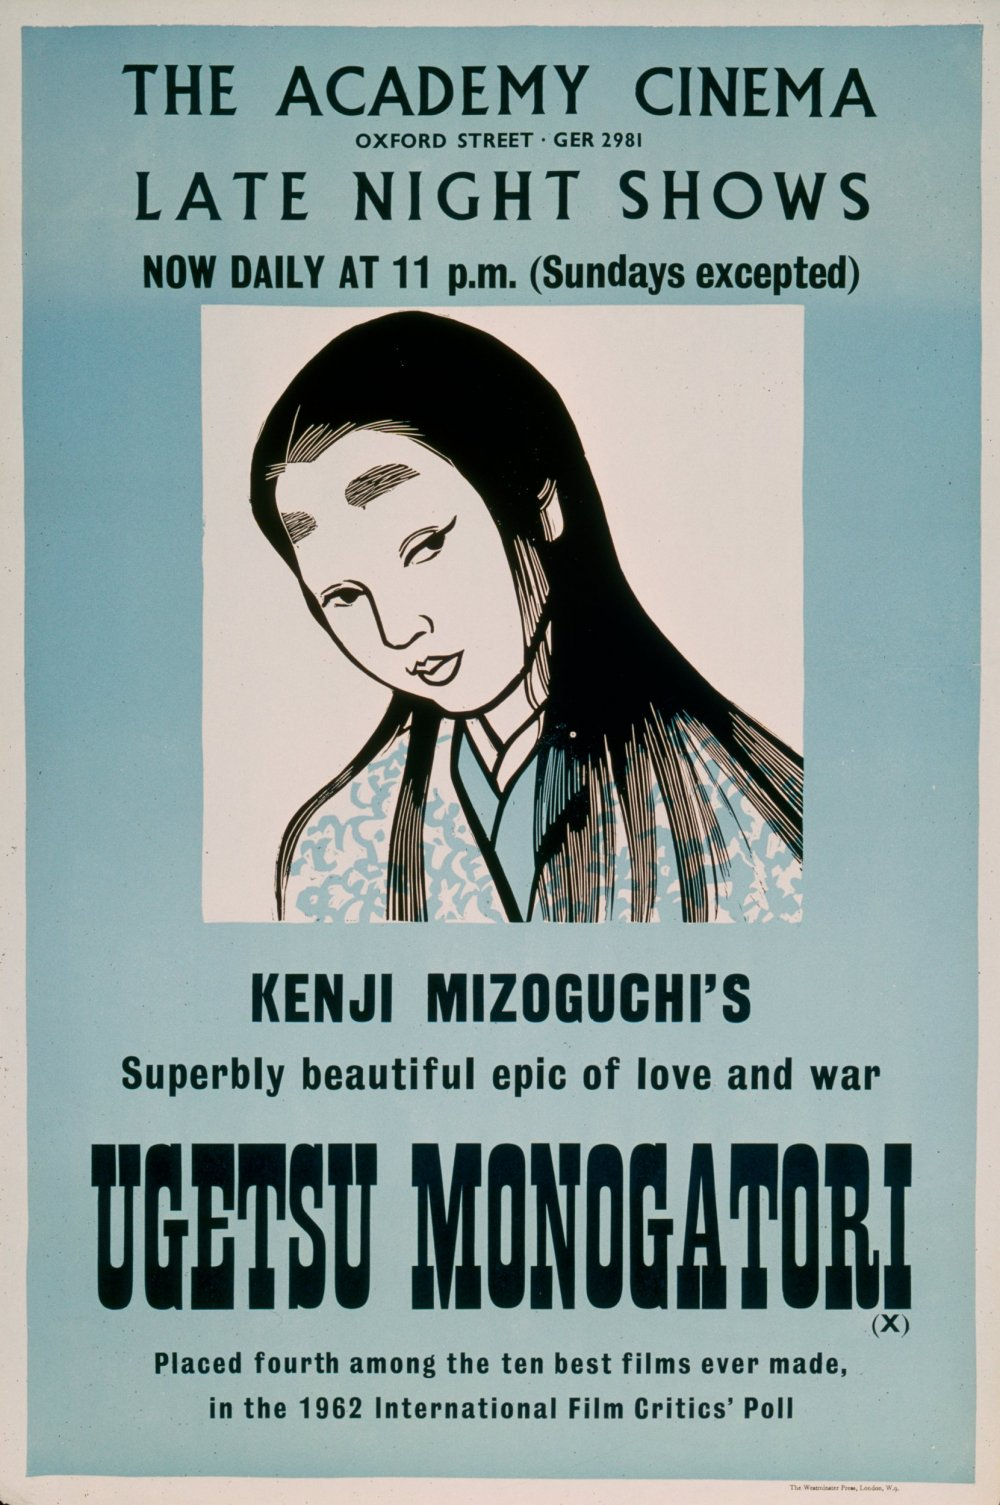 The London Academy Cinema 's poster for Ugetsu Monogatari